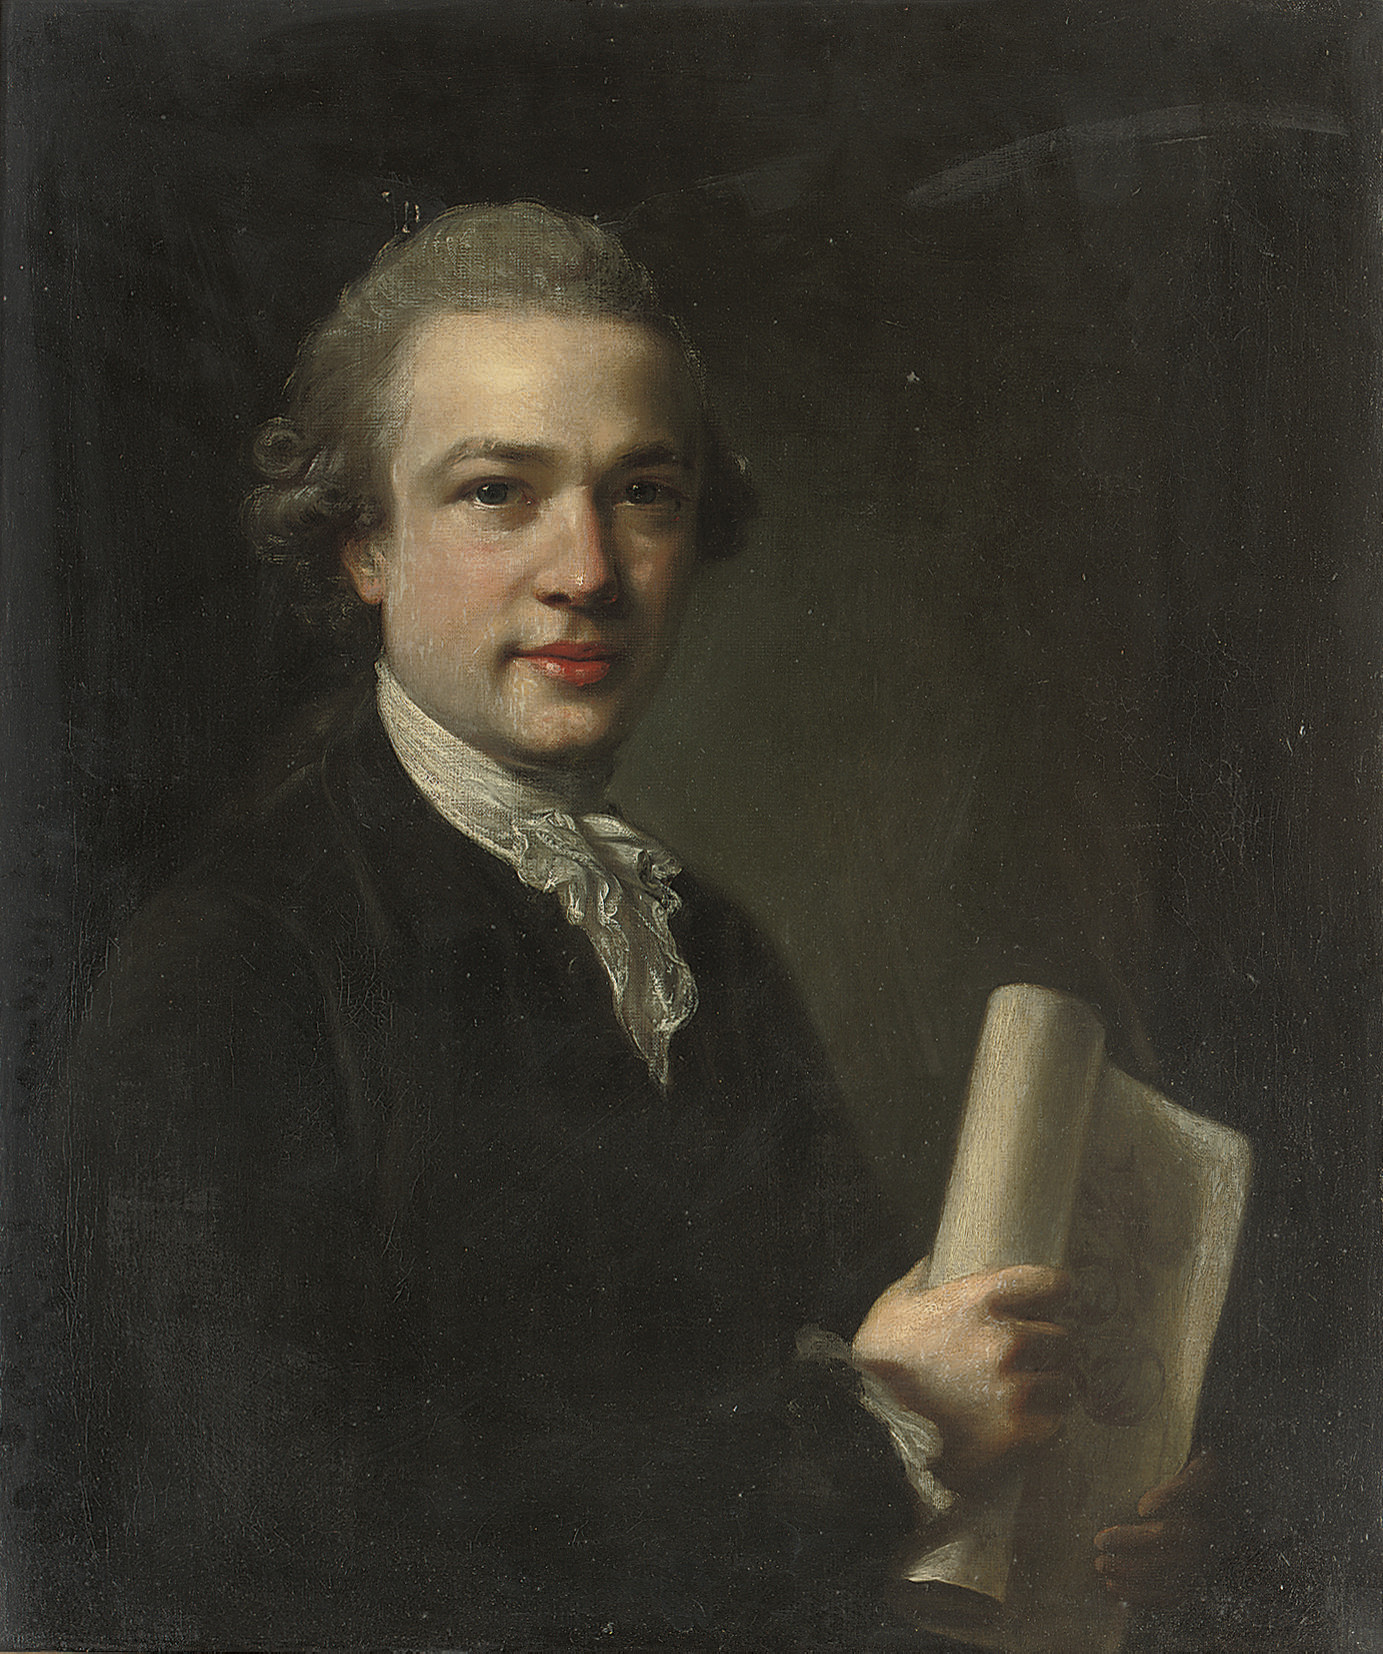 Portrait of George Gostling, half-length, a drawing of the Madonna and Child in his right hand